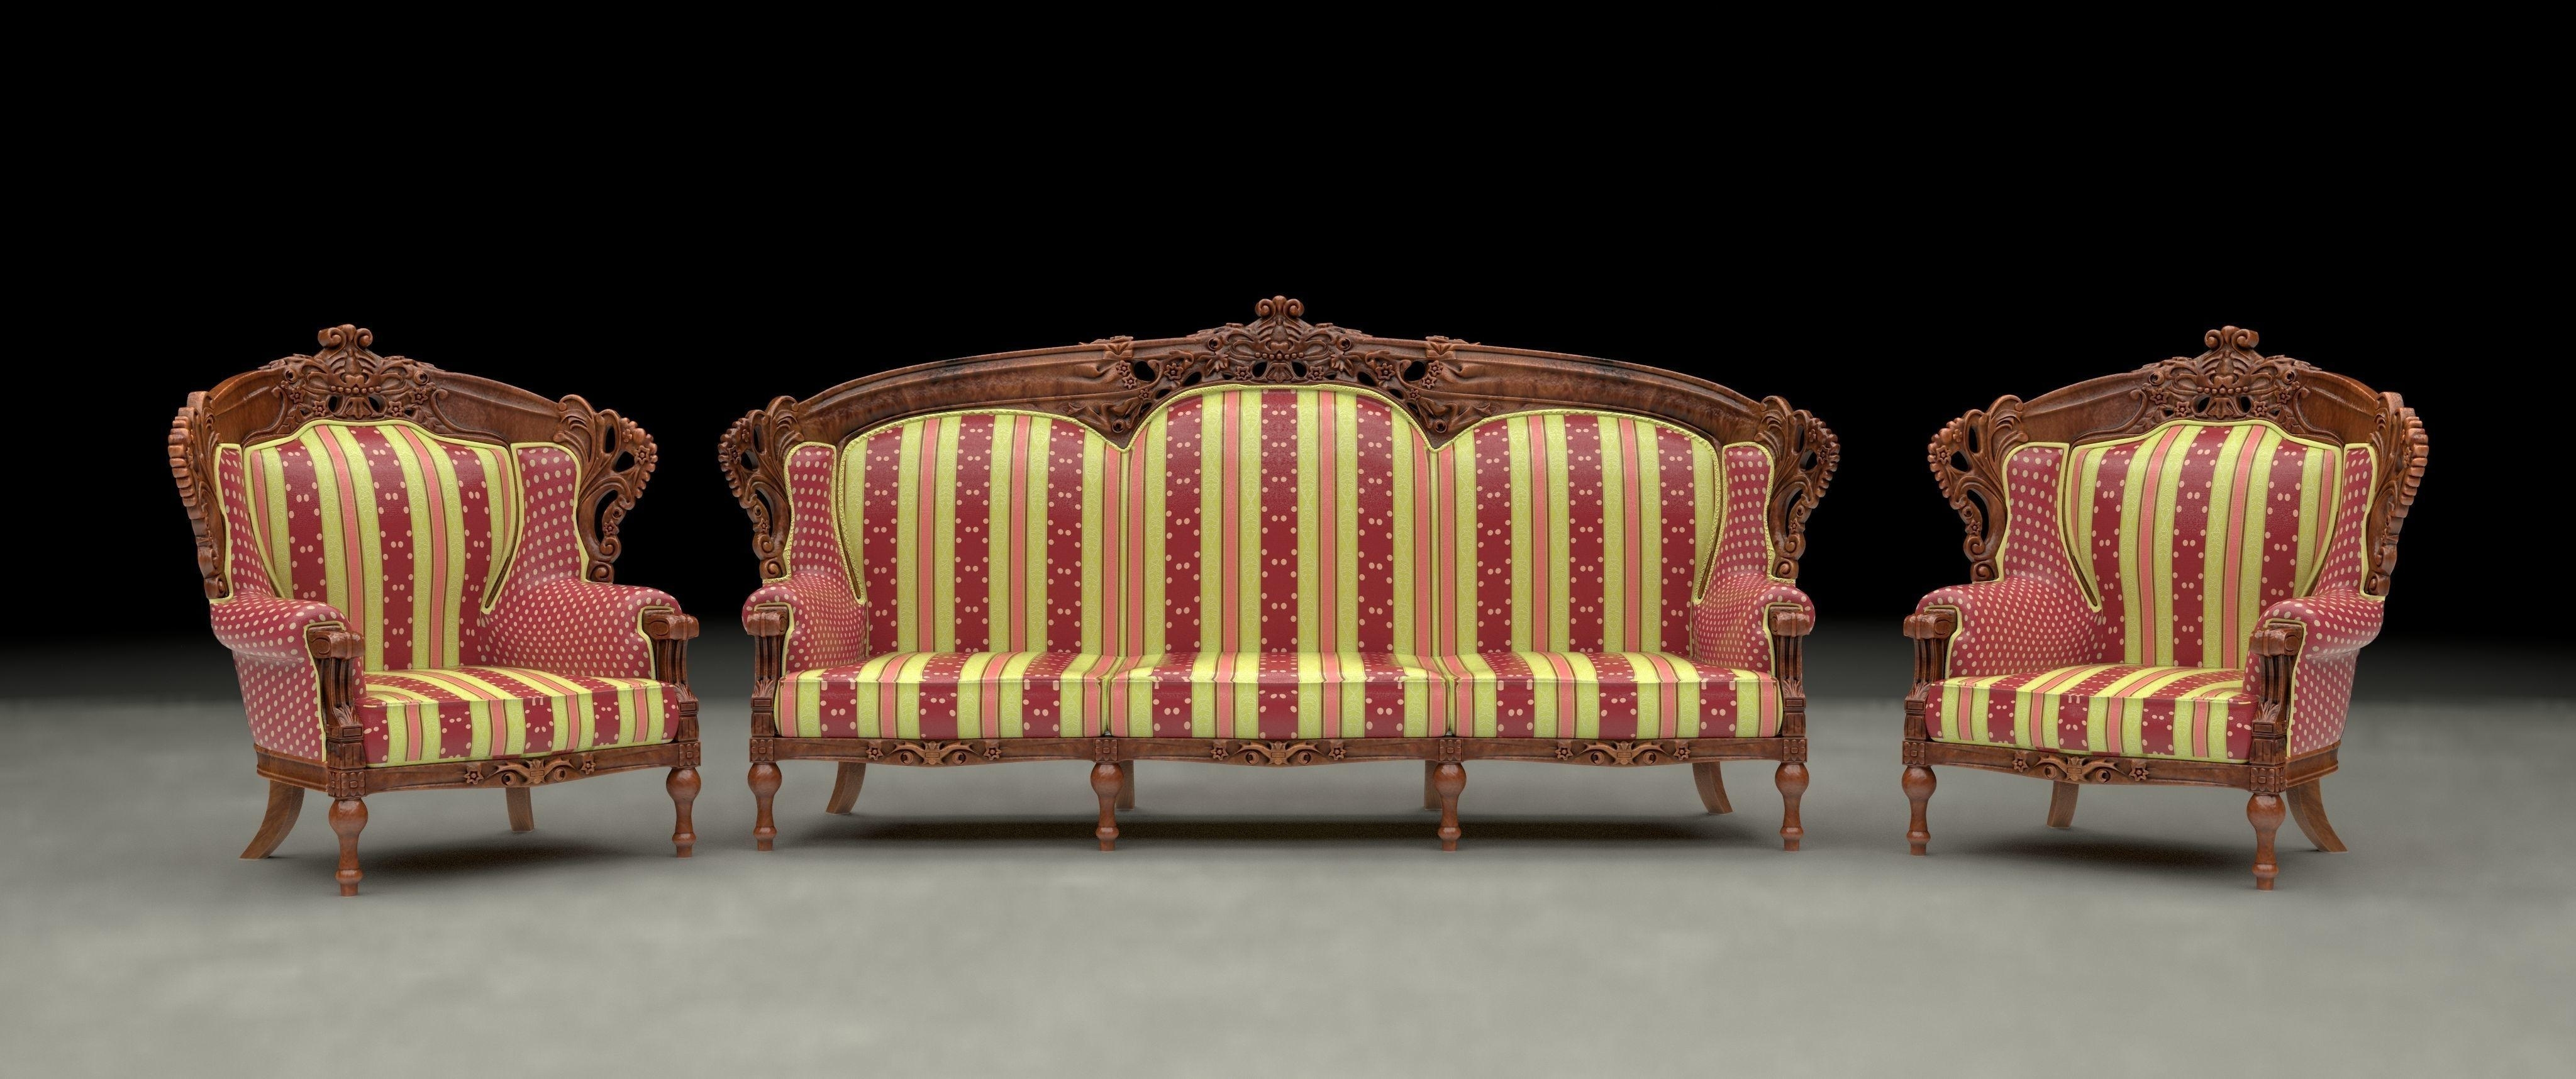 3D Model Ethnic Carved Wood Sofa And Armchair | Cgtrader with regard to Carved Wood Sofas